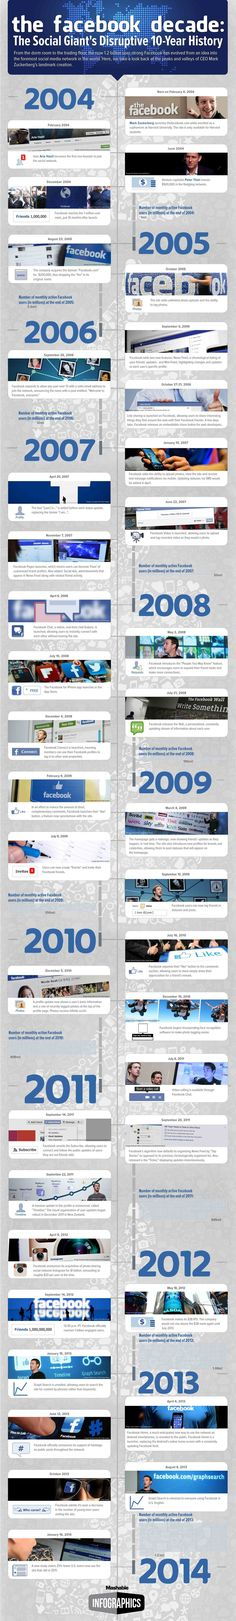 The Facebook Decade: The social giant's disruptive 10-year history #infographic